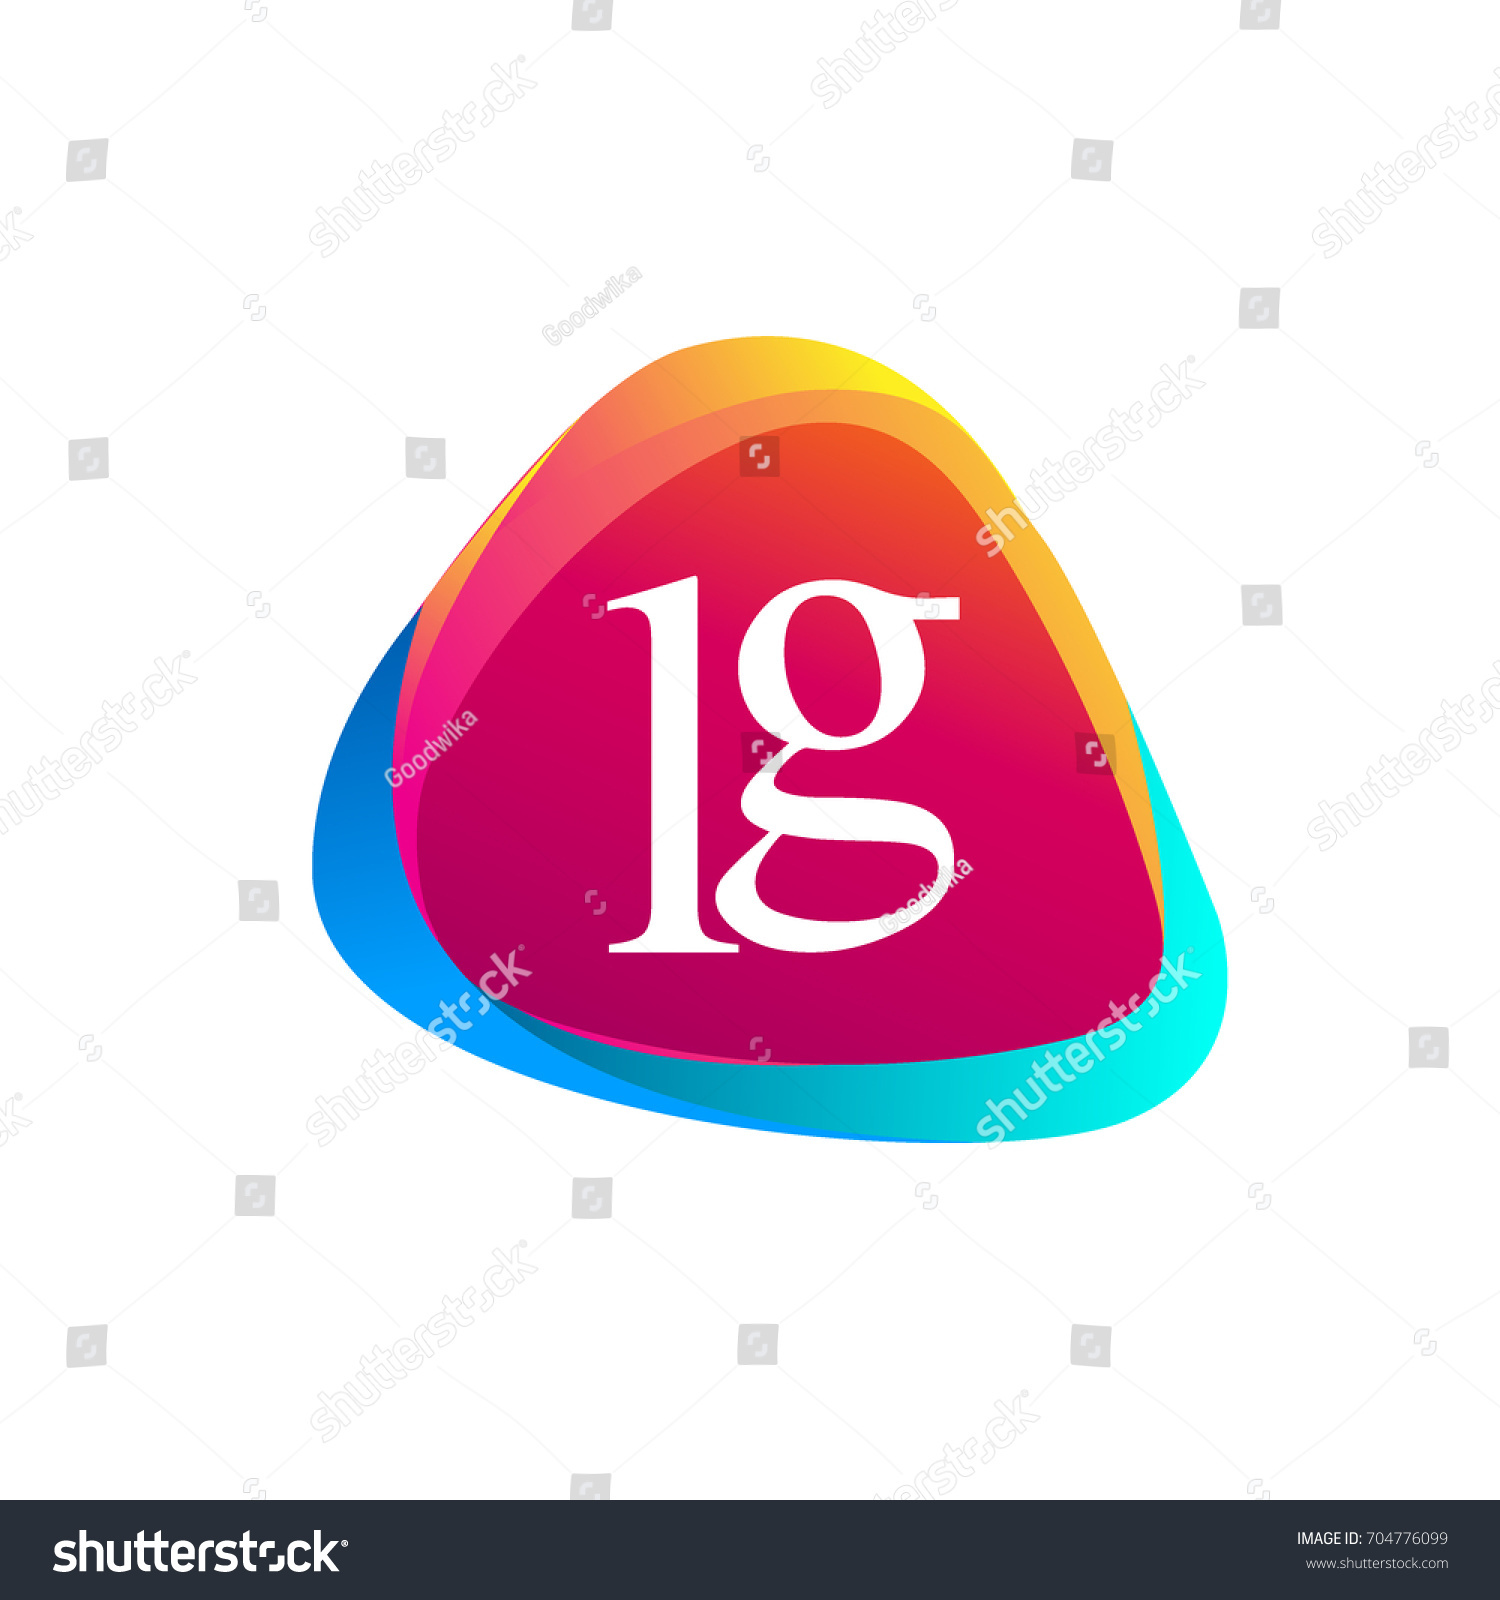 Letter Lg Logo Triangle Shape Colorful Stock Vector Royalty Free